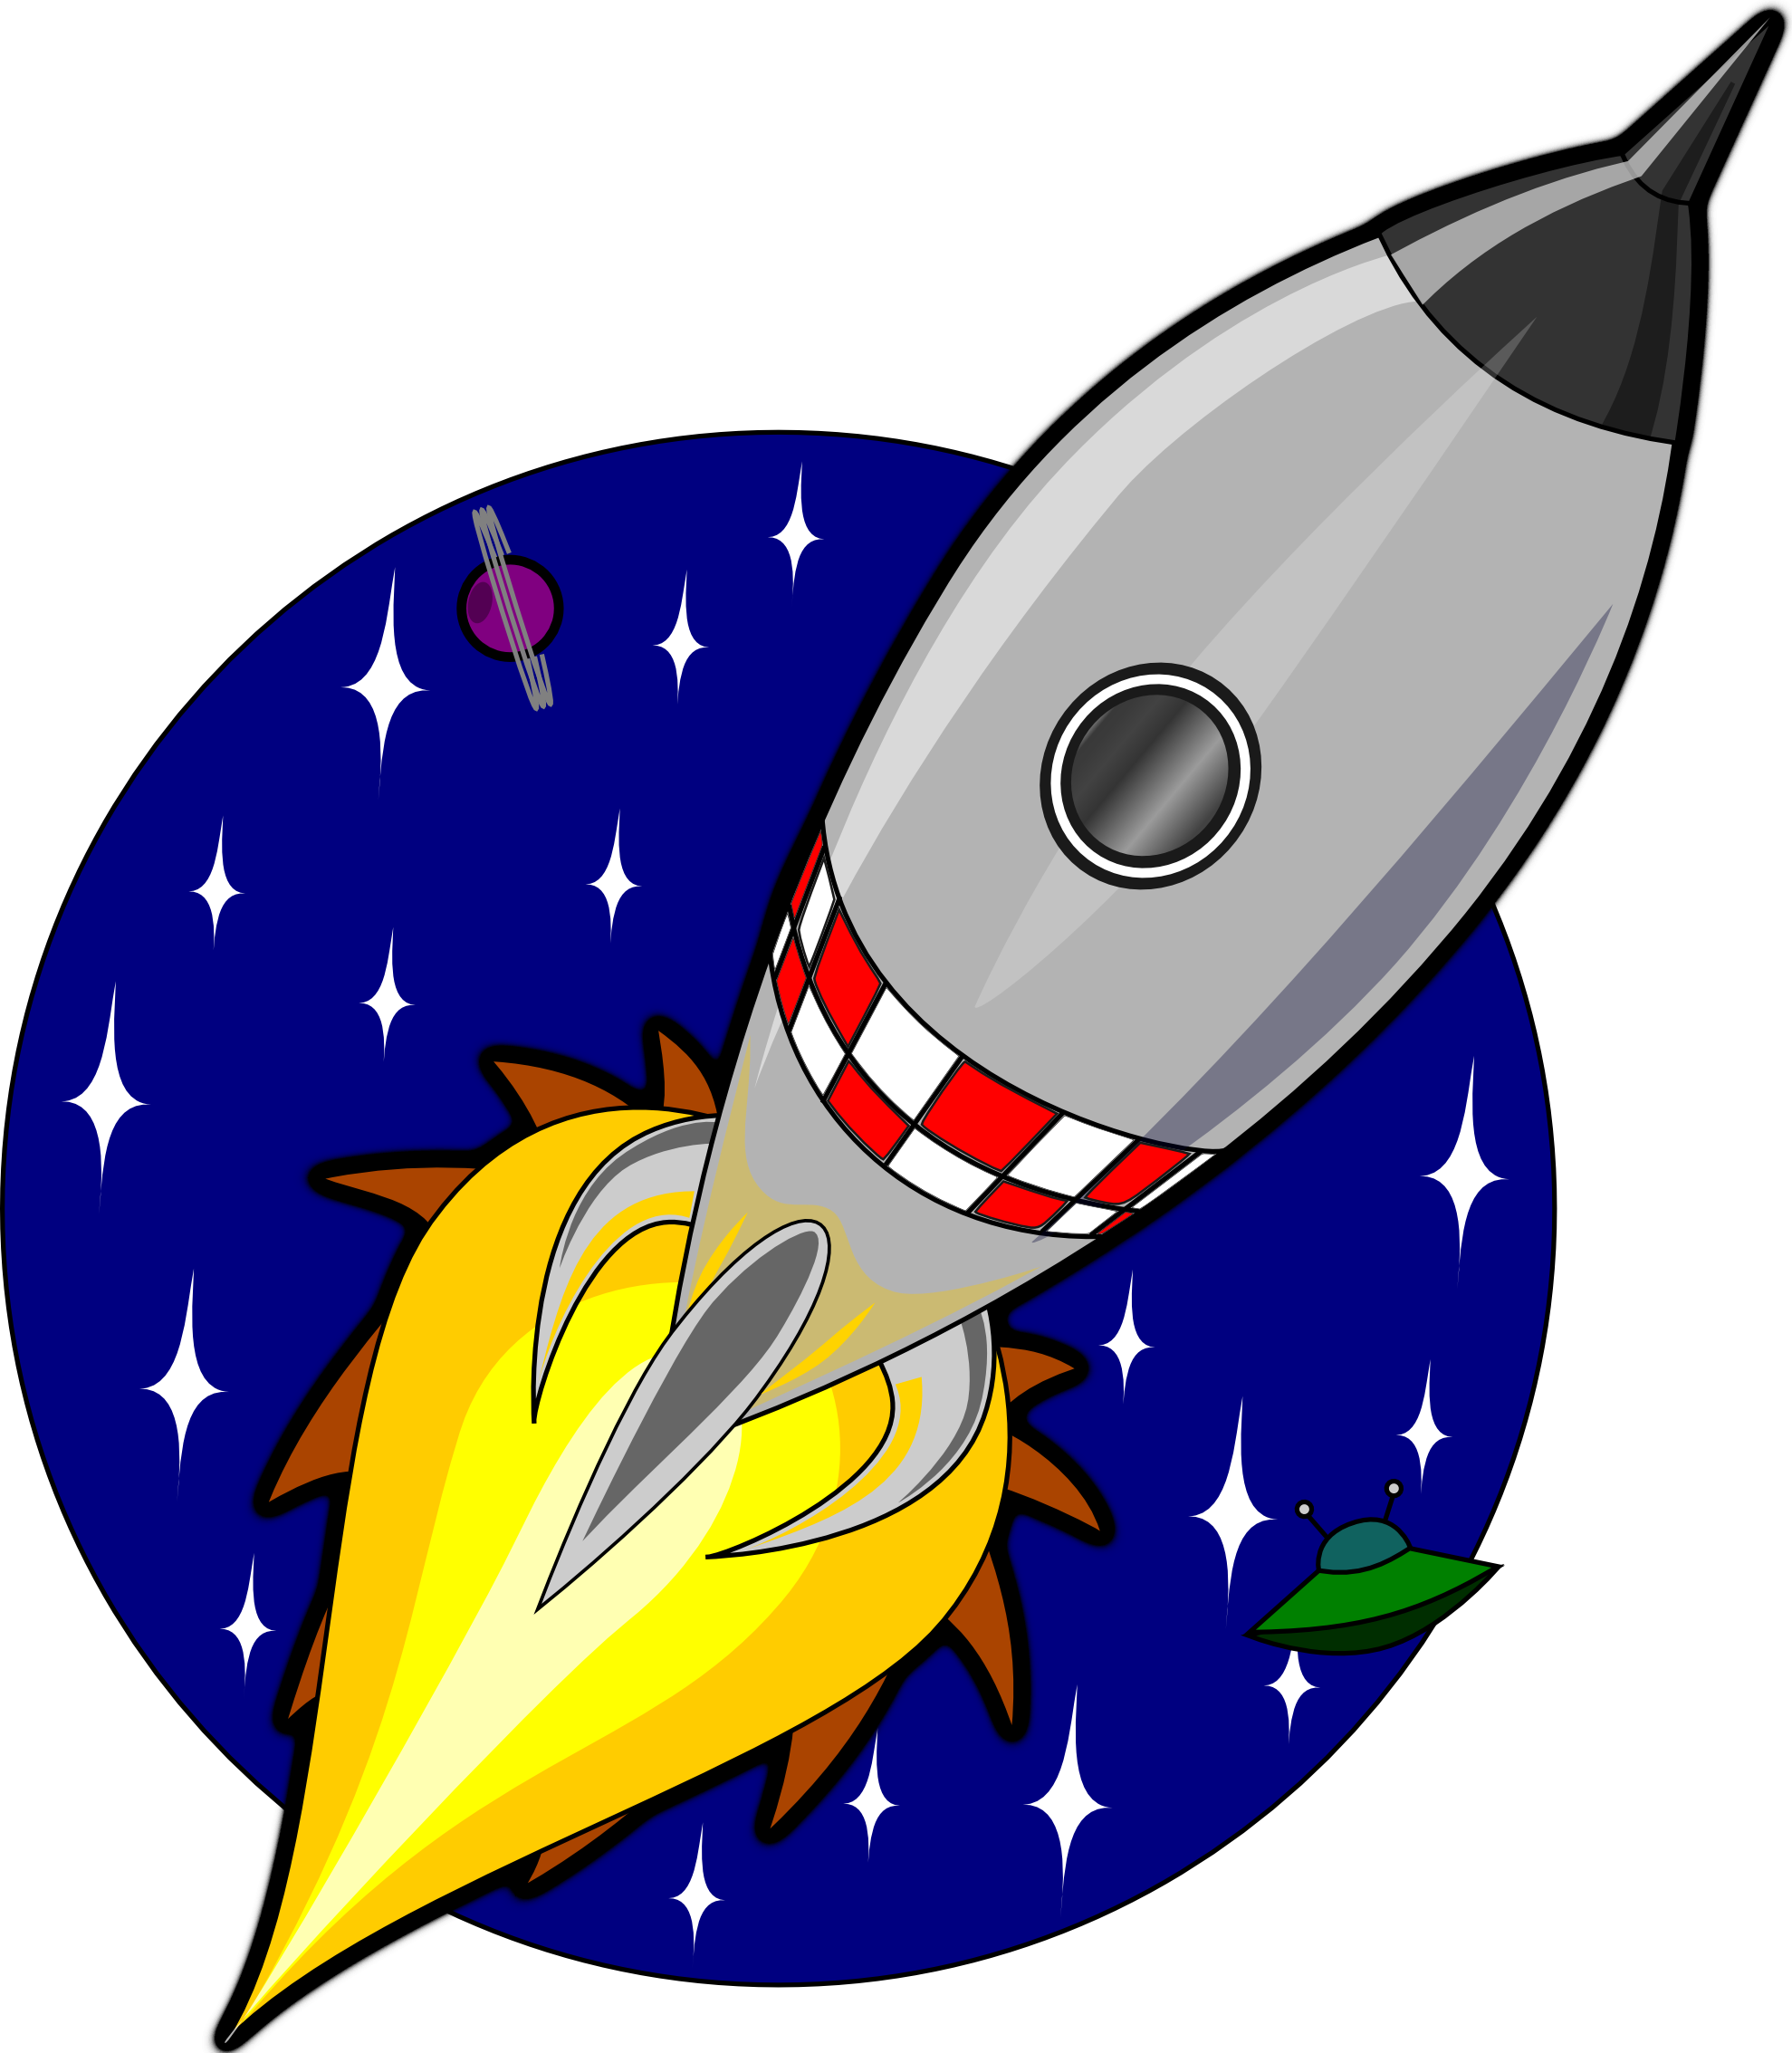 Rocket clipart cliparts and .